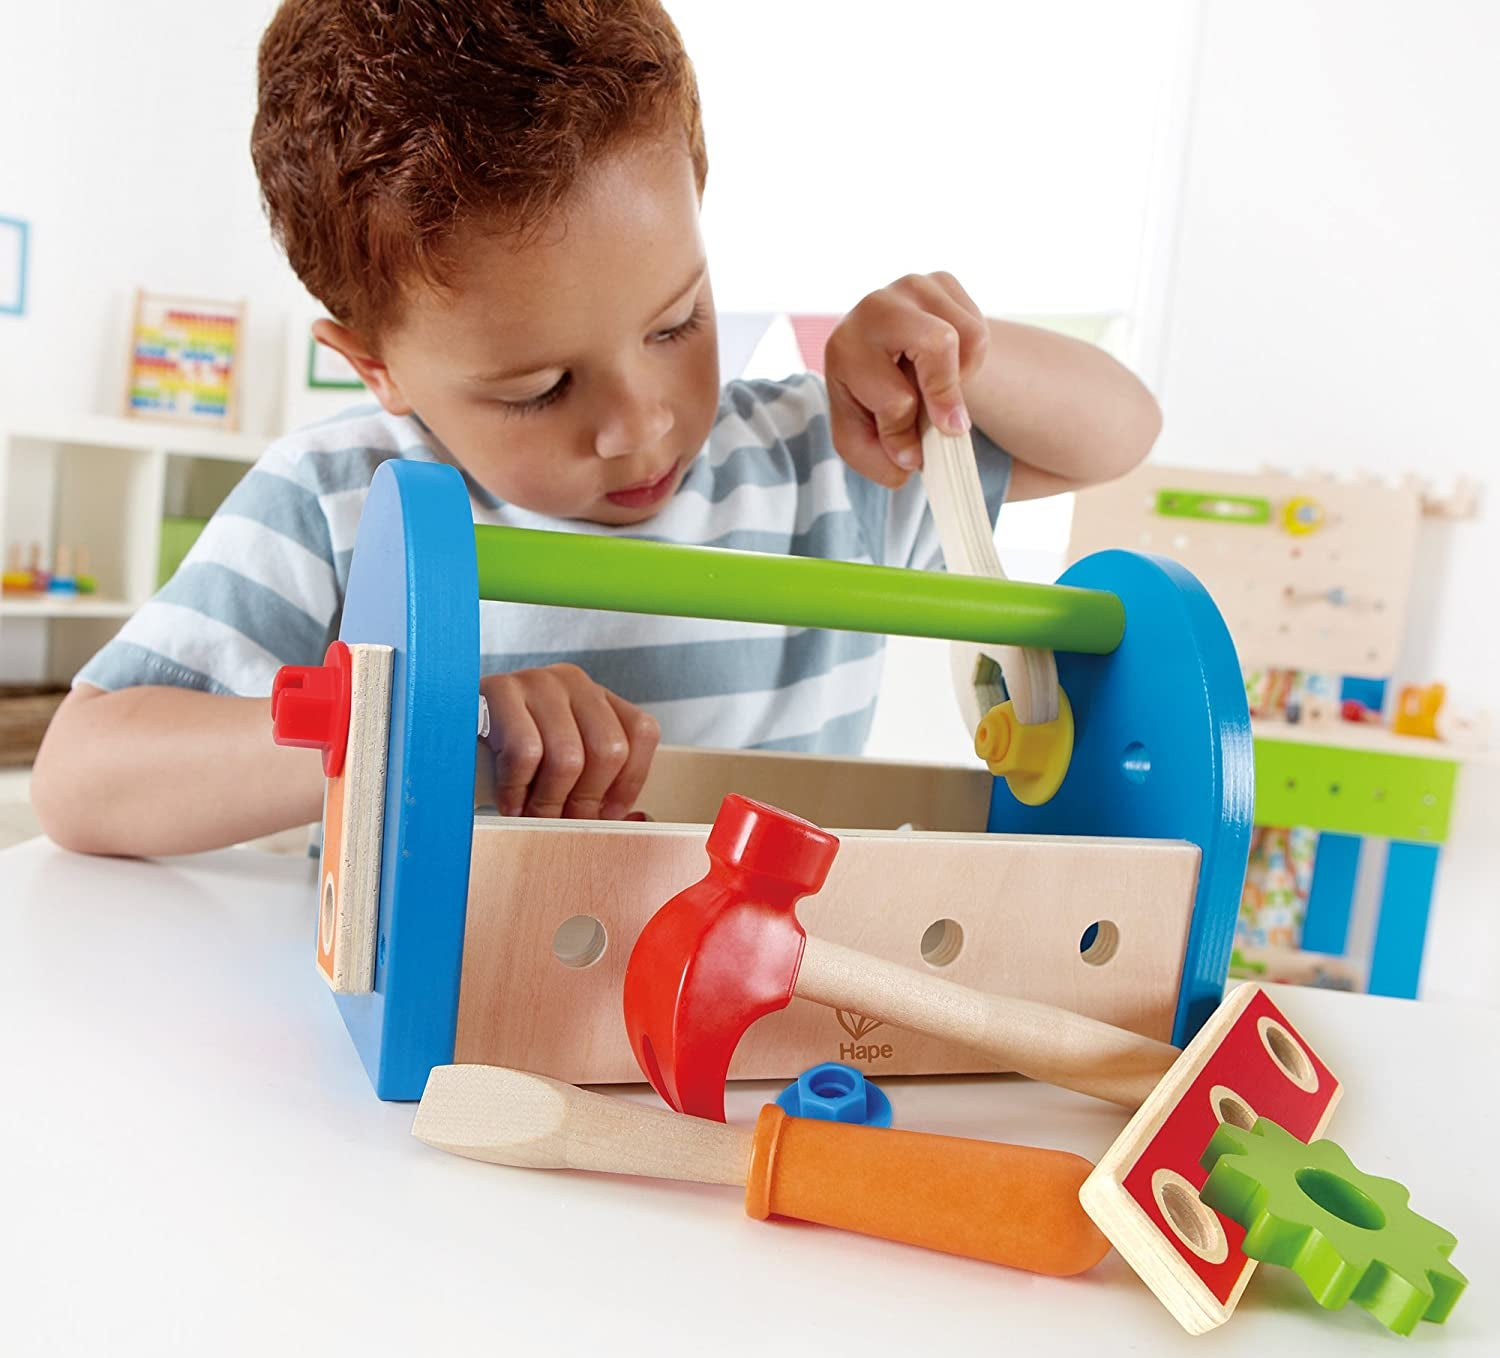 Child model playing with colorful wooden tool kit